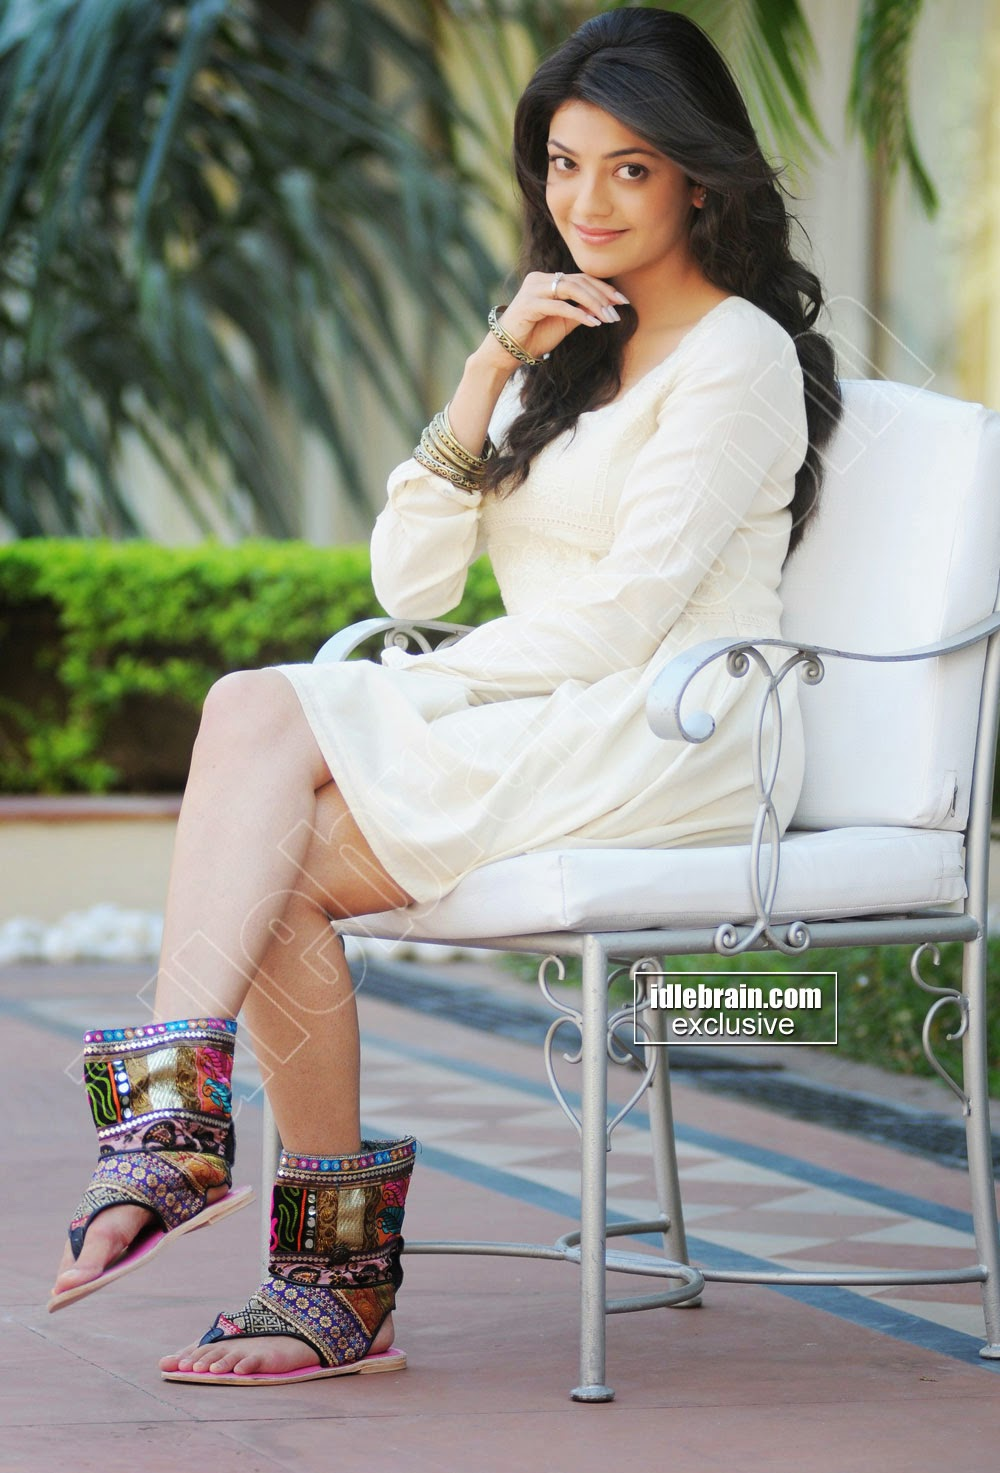 Kajal Agarwal crossed legs